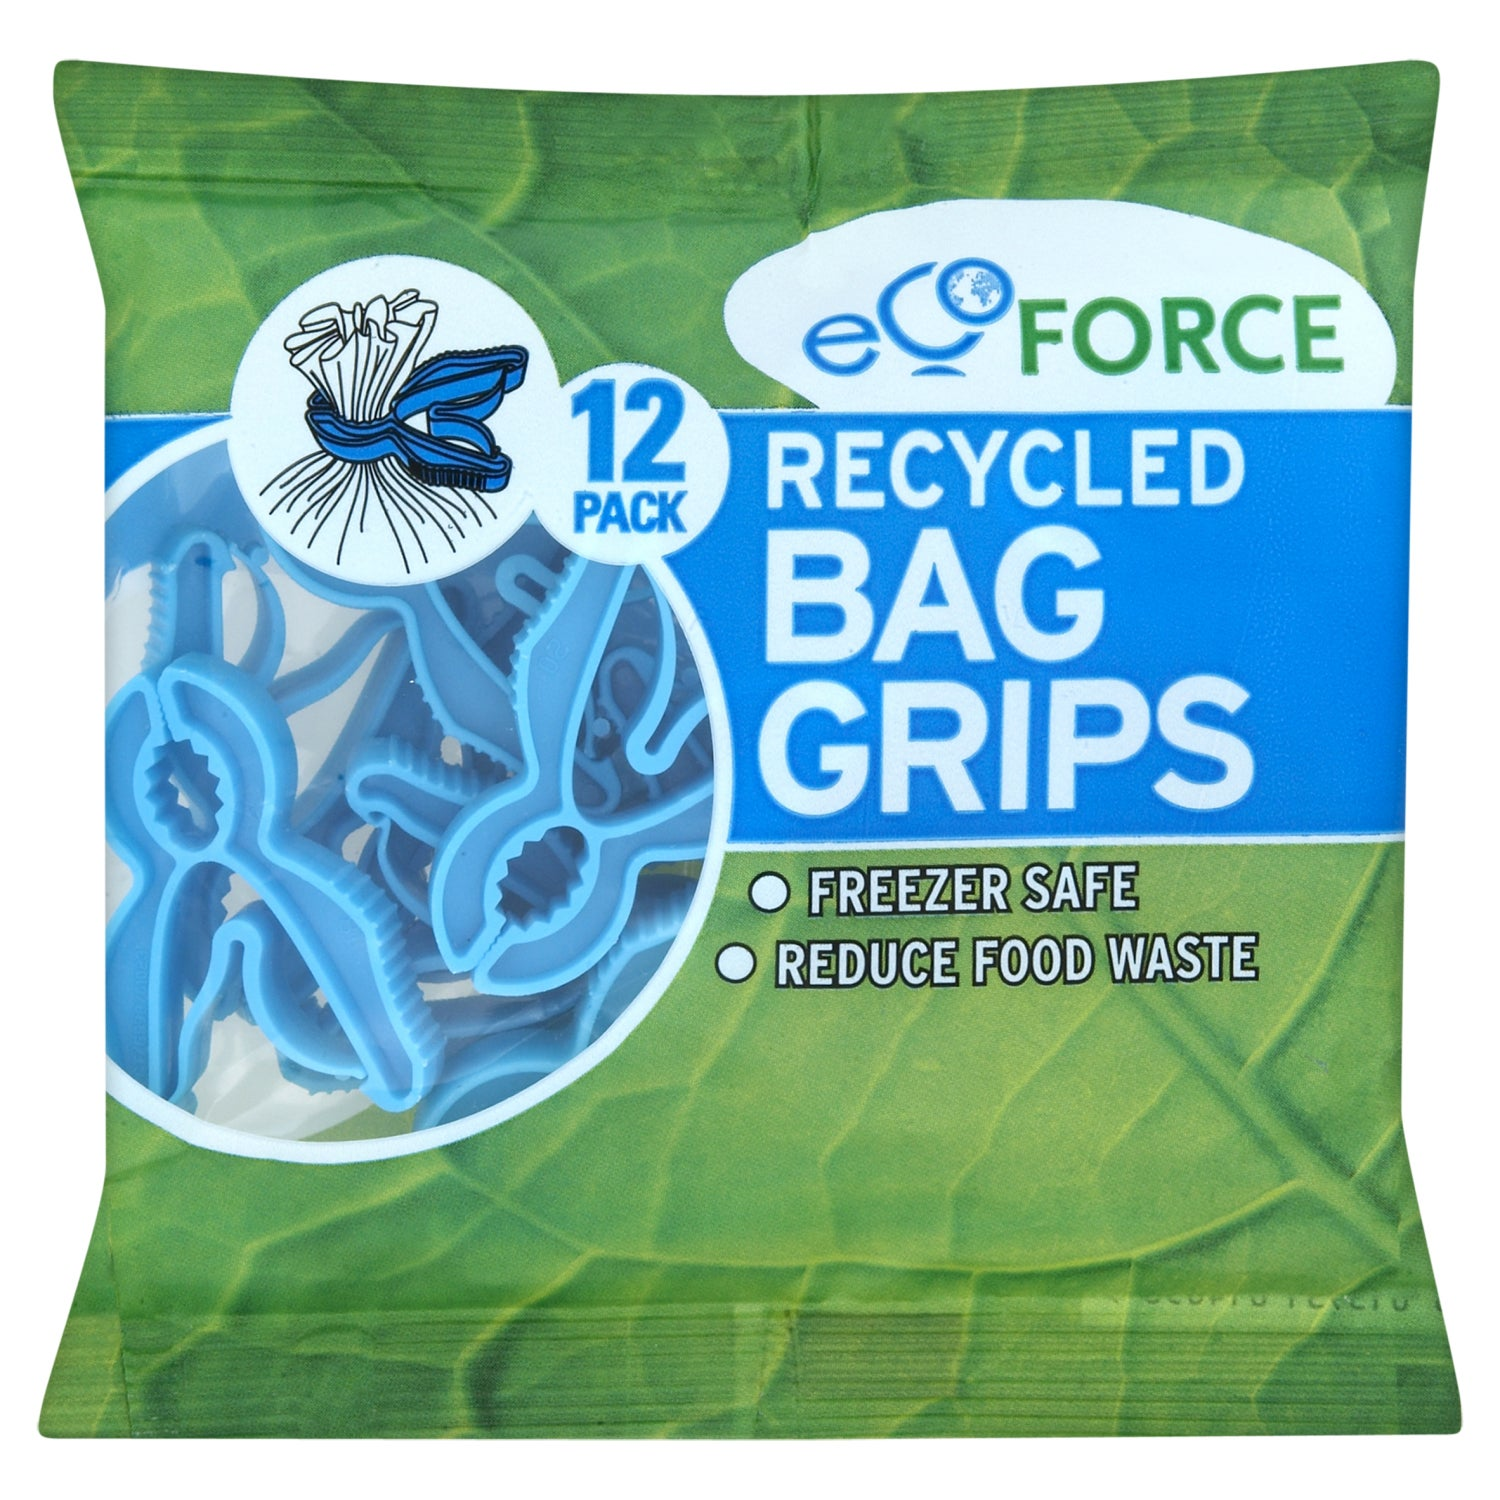 EcoForce Recycled Bag Grips